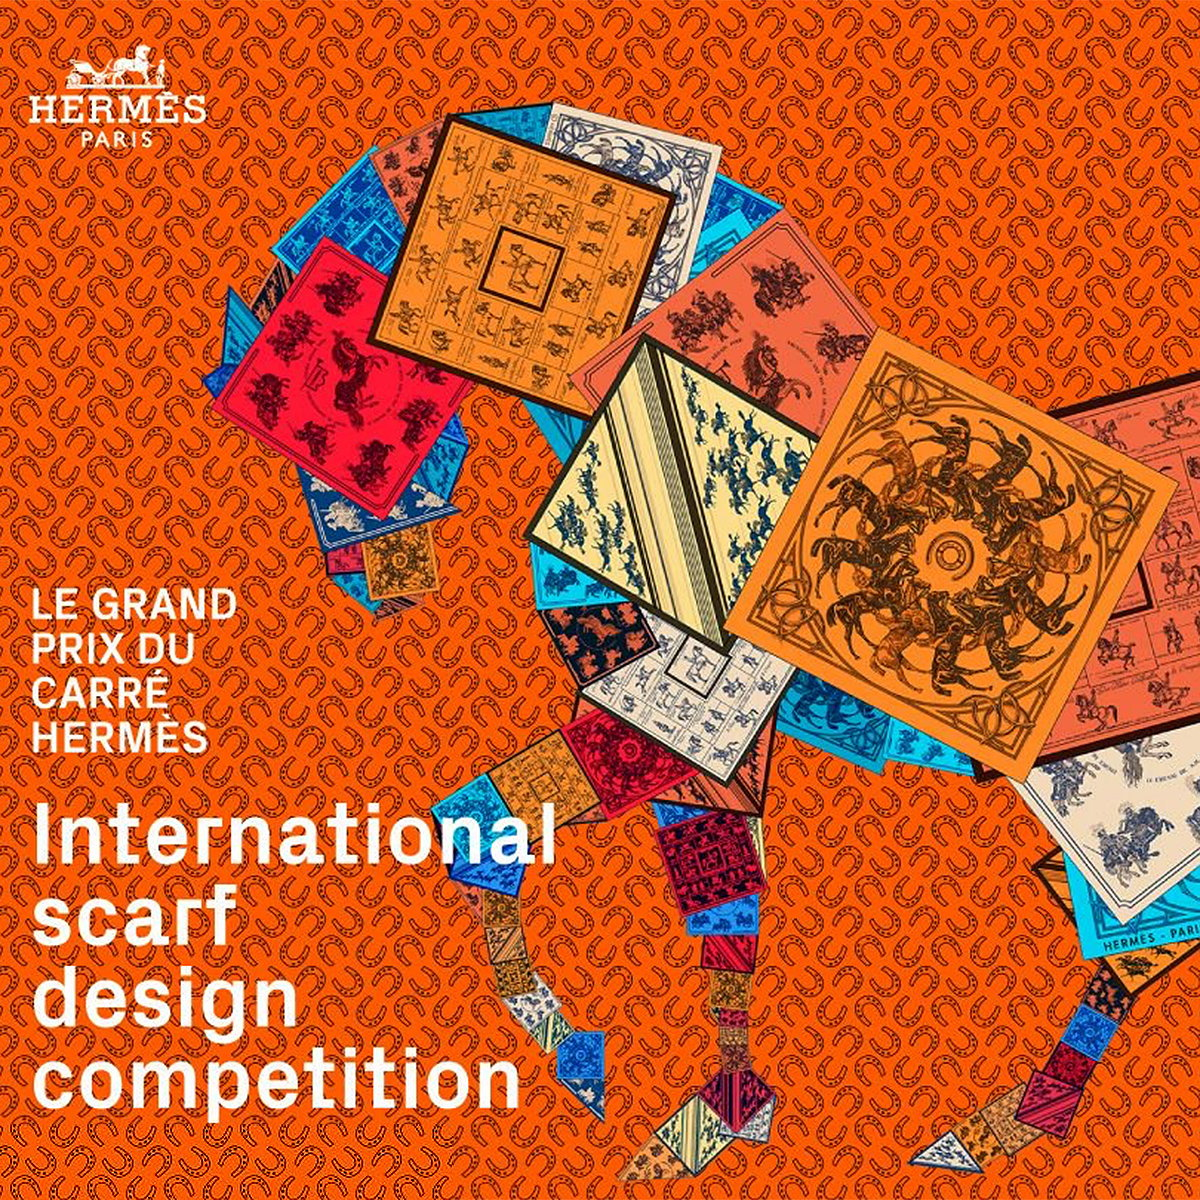 Le Grand Prix du Carré Hermès - Scarf Design Competition